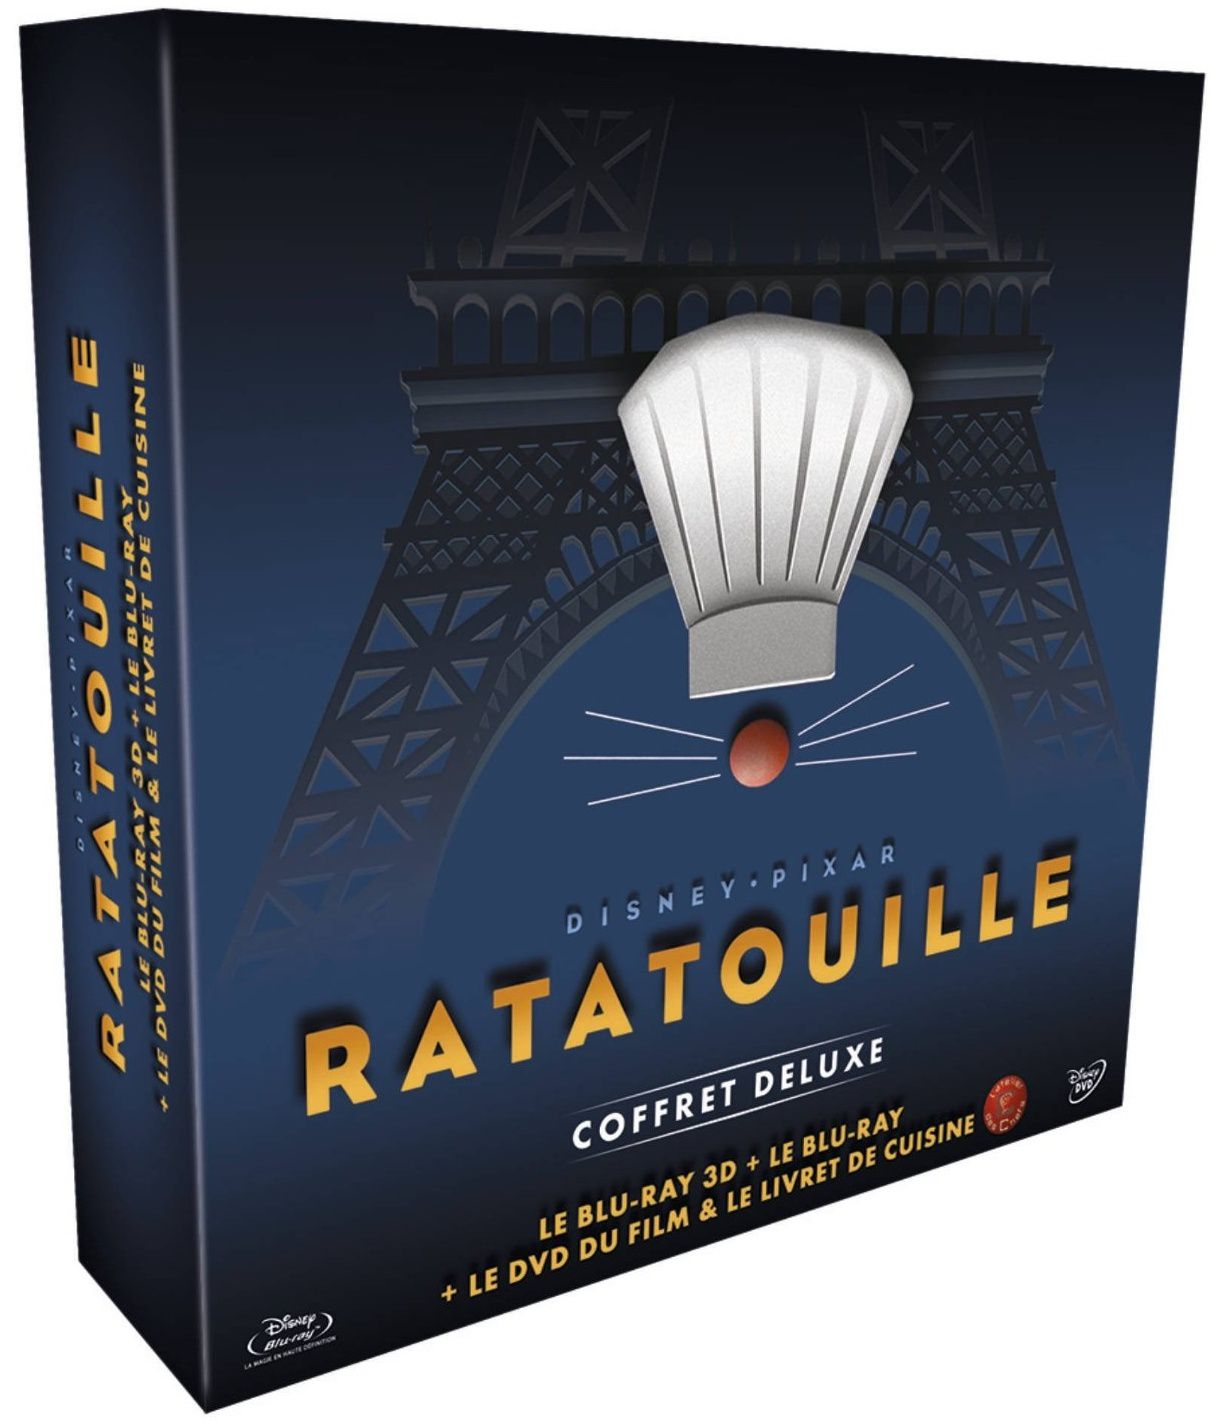 Ratatouille en coffret blu-ray collector deluxe